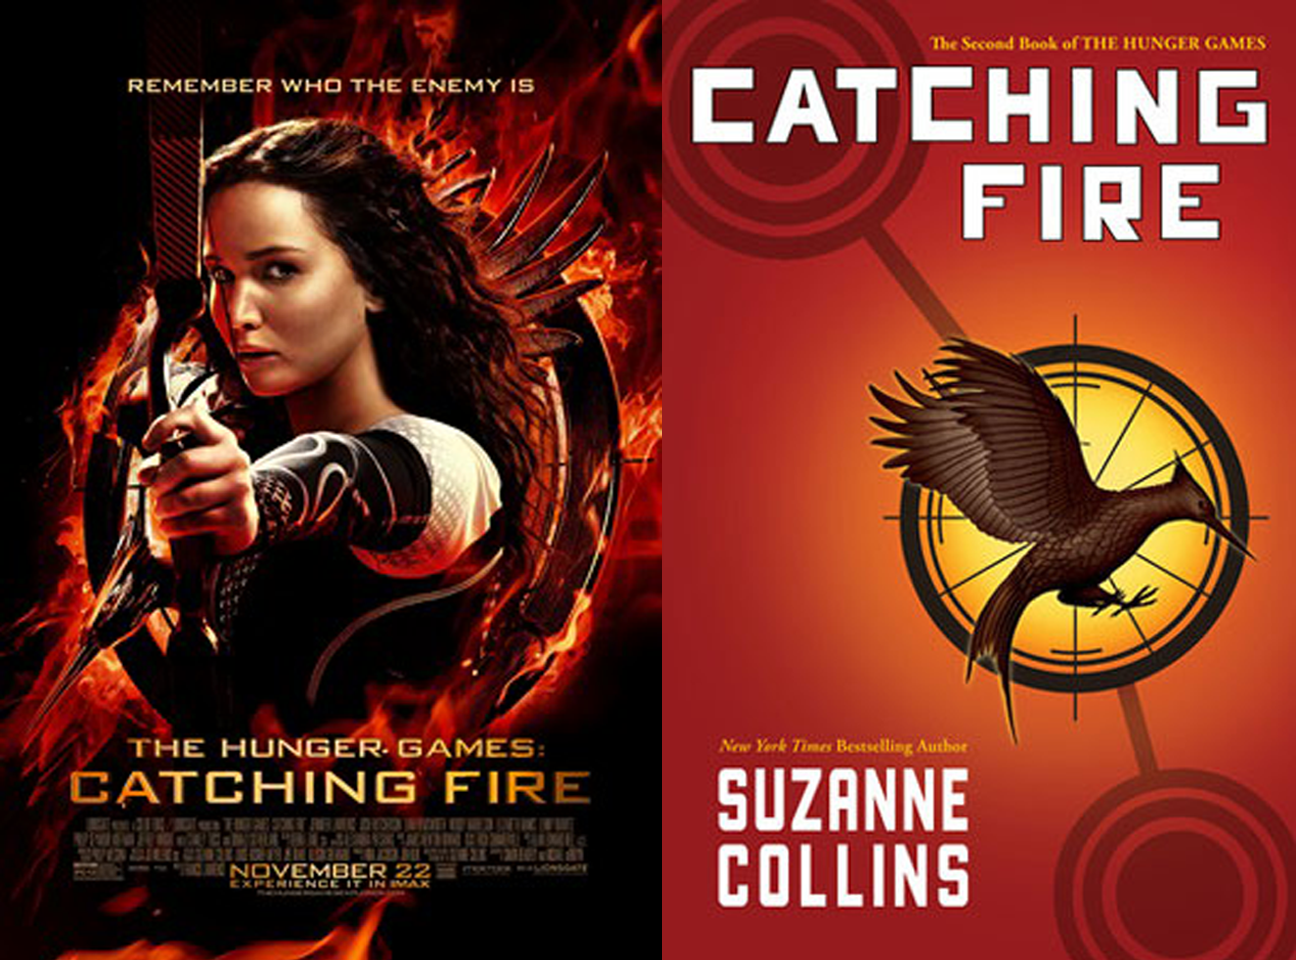 Ohana Reads: Movie Review: The Hunger Games: Catching Fire